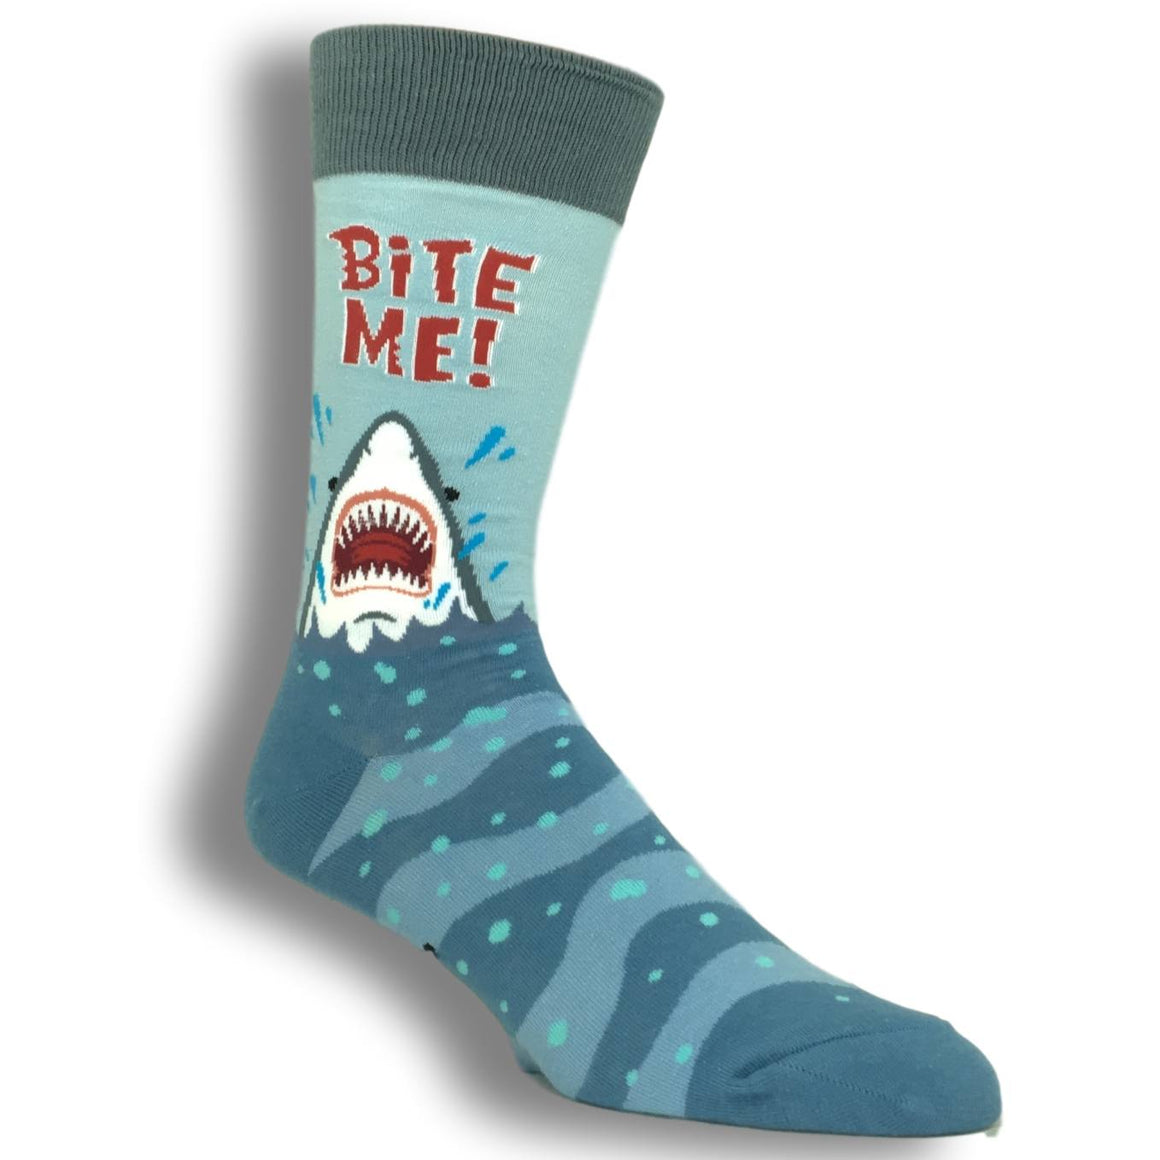 Bite Me Shark Socks by Foot Traffic - The Sock Spot